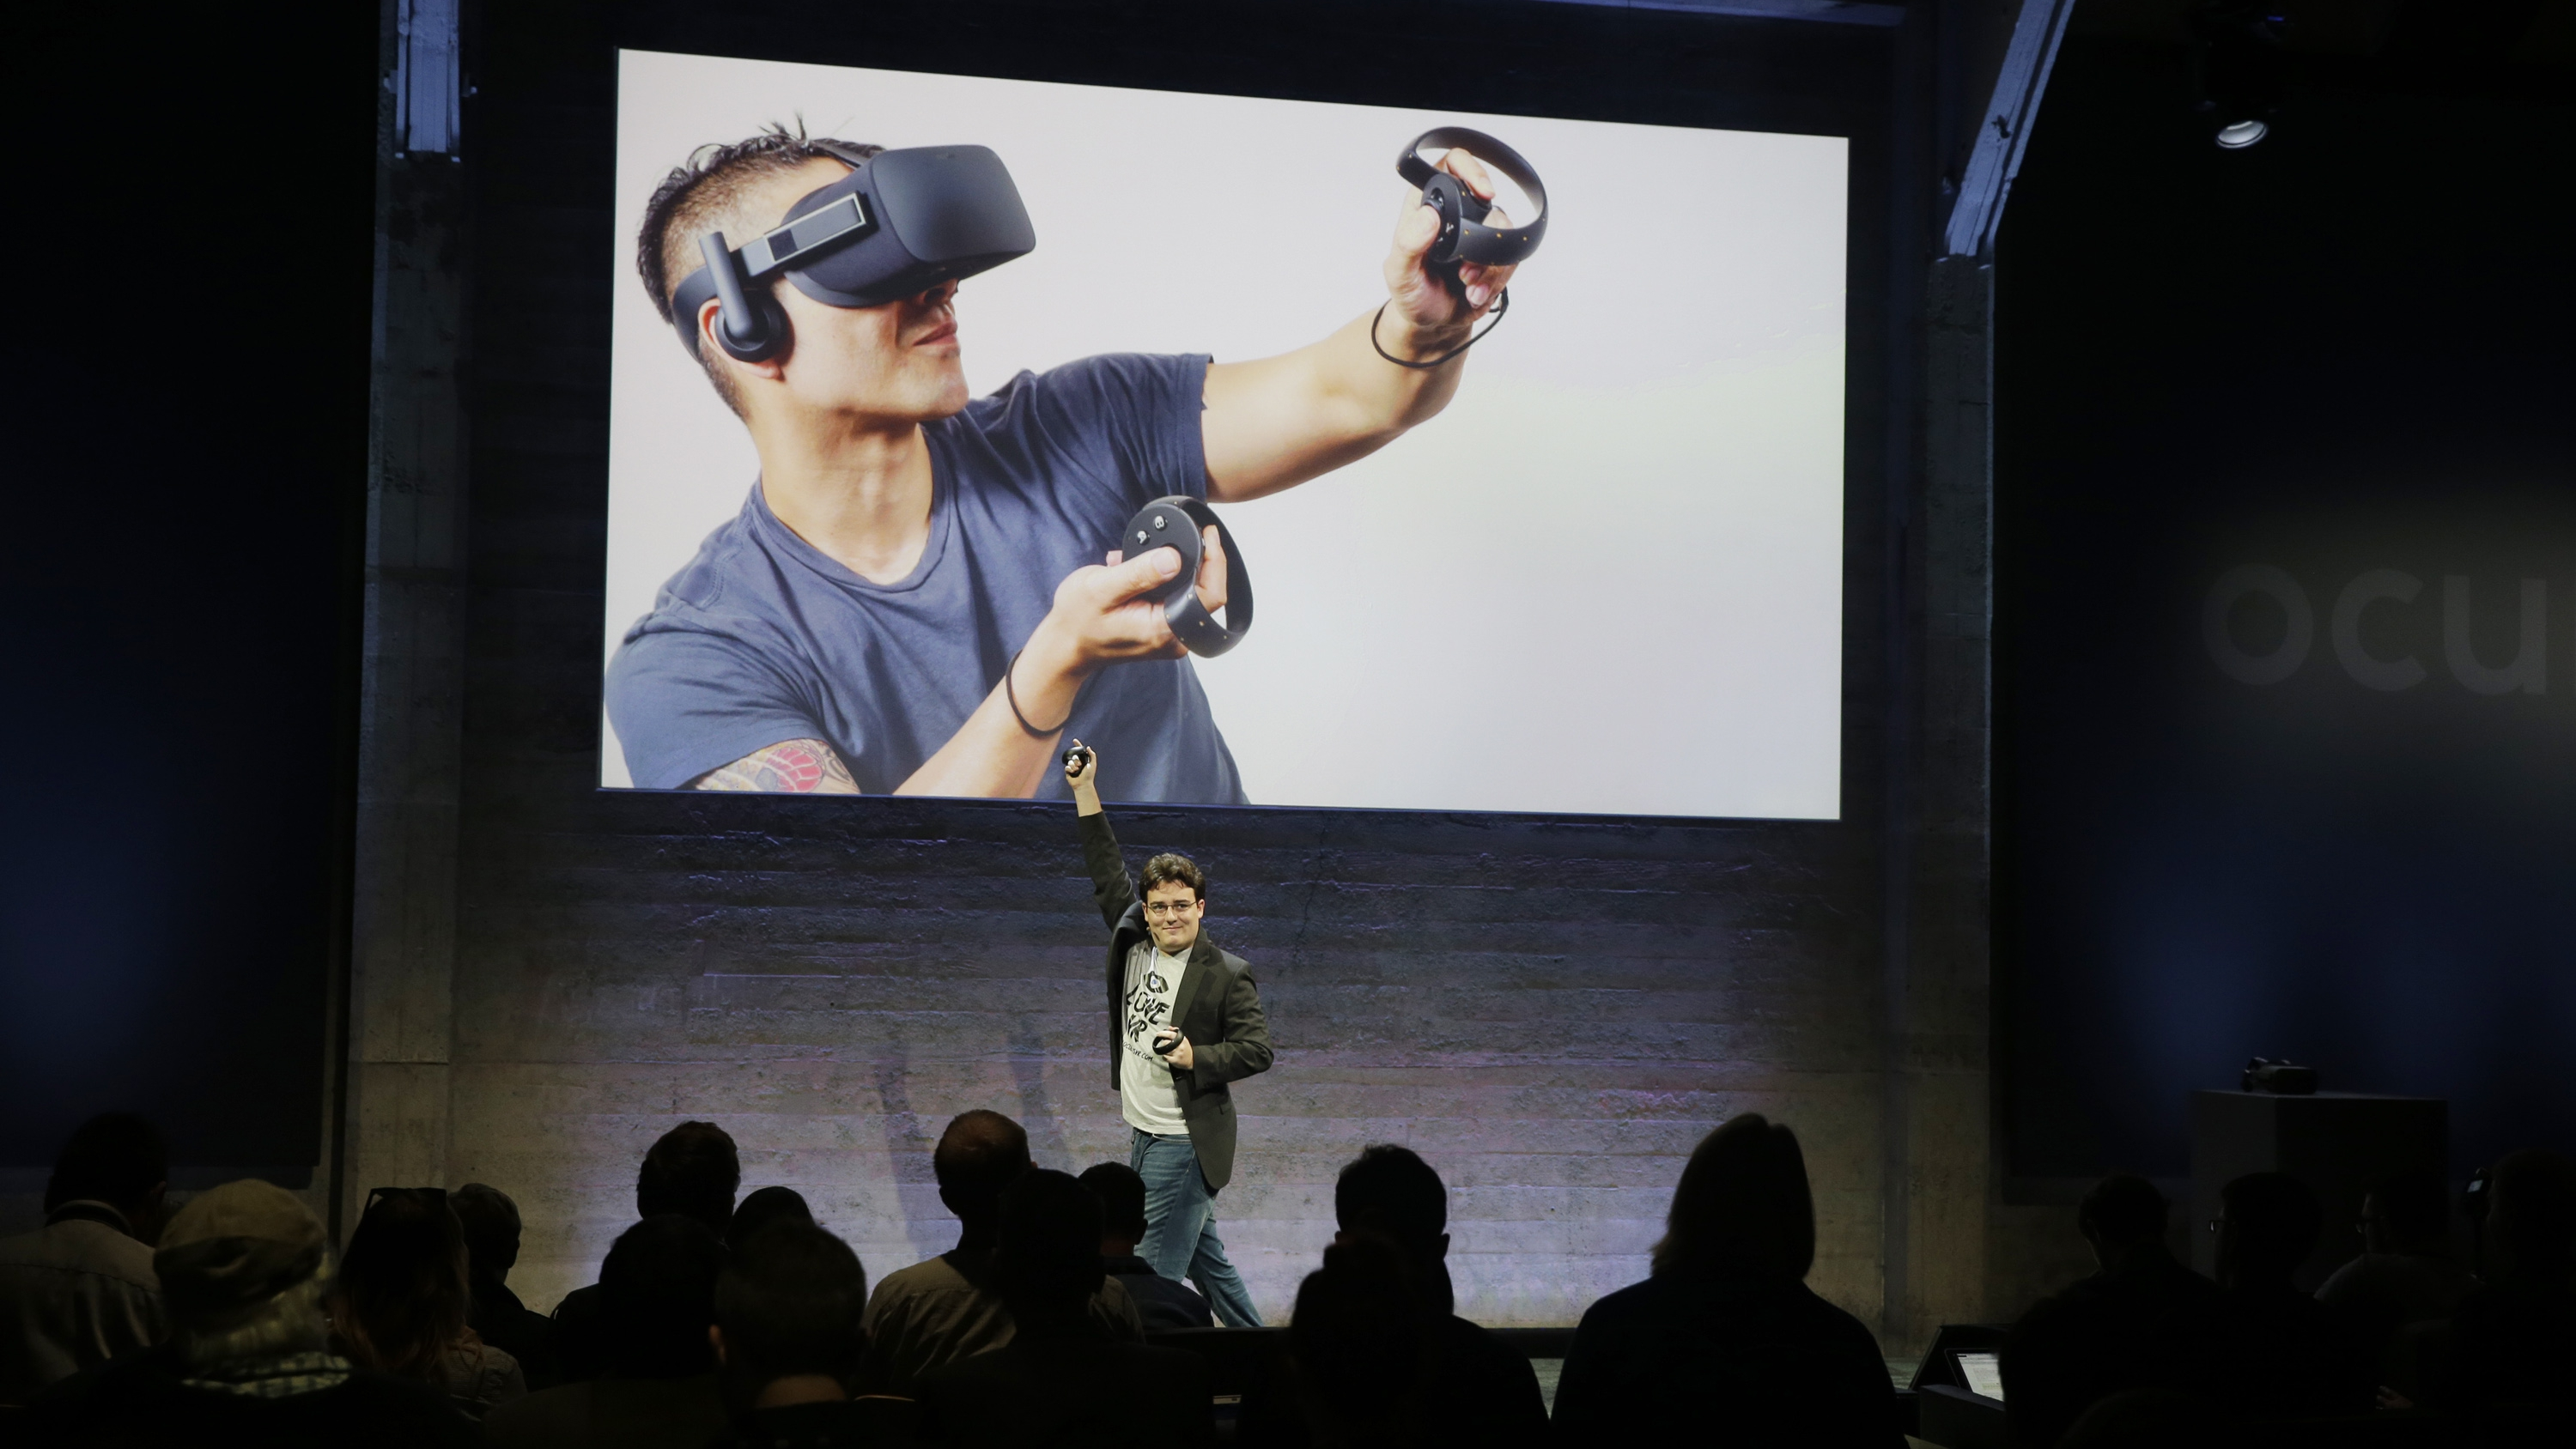 Palmer Luckey inventor of the Oculus Rift VR headset is out